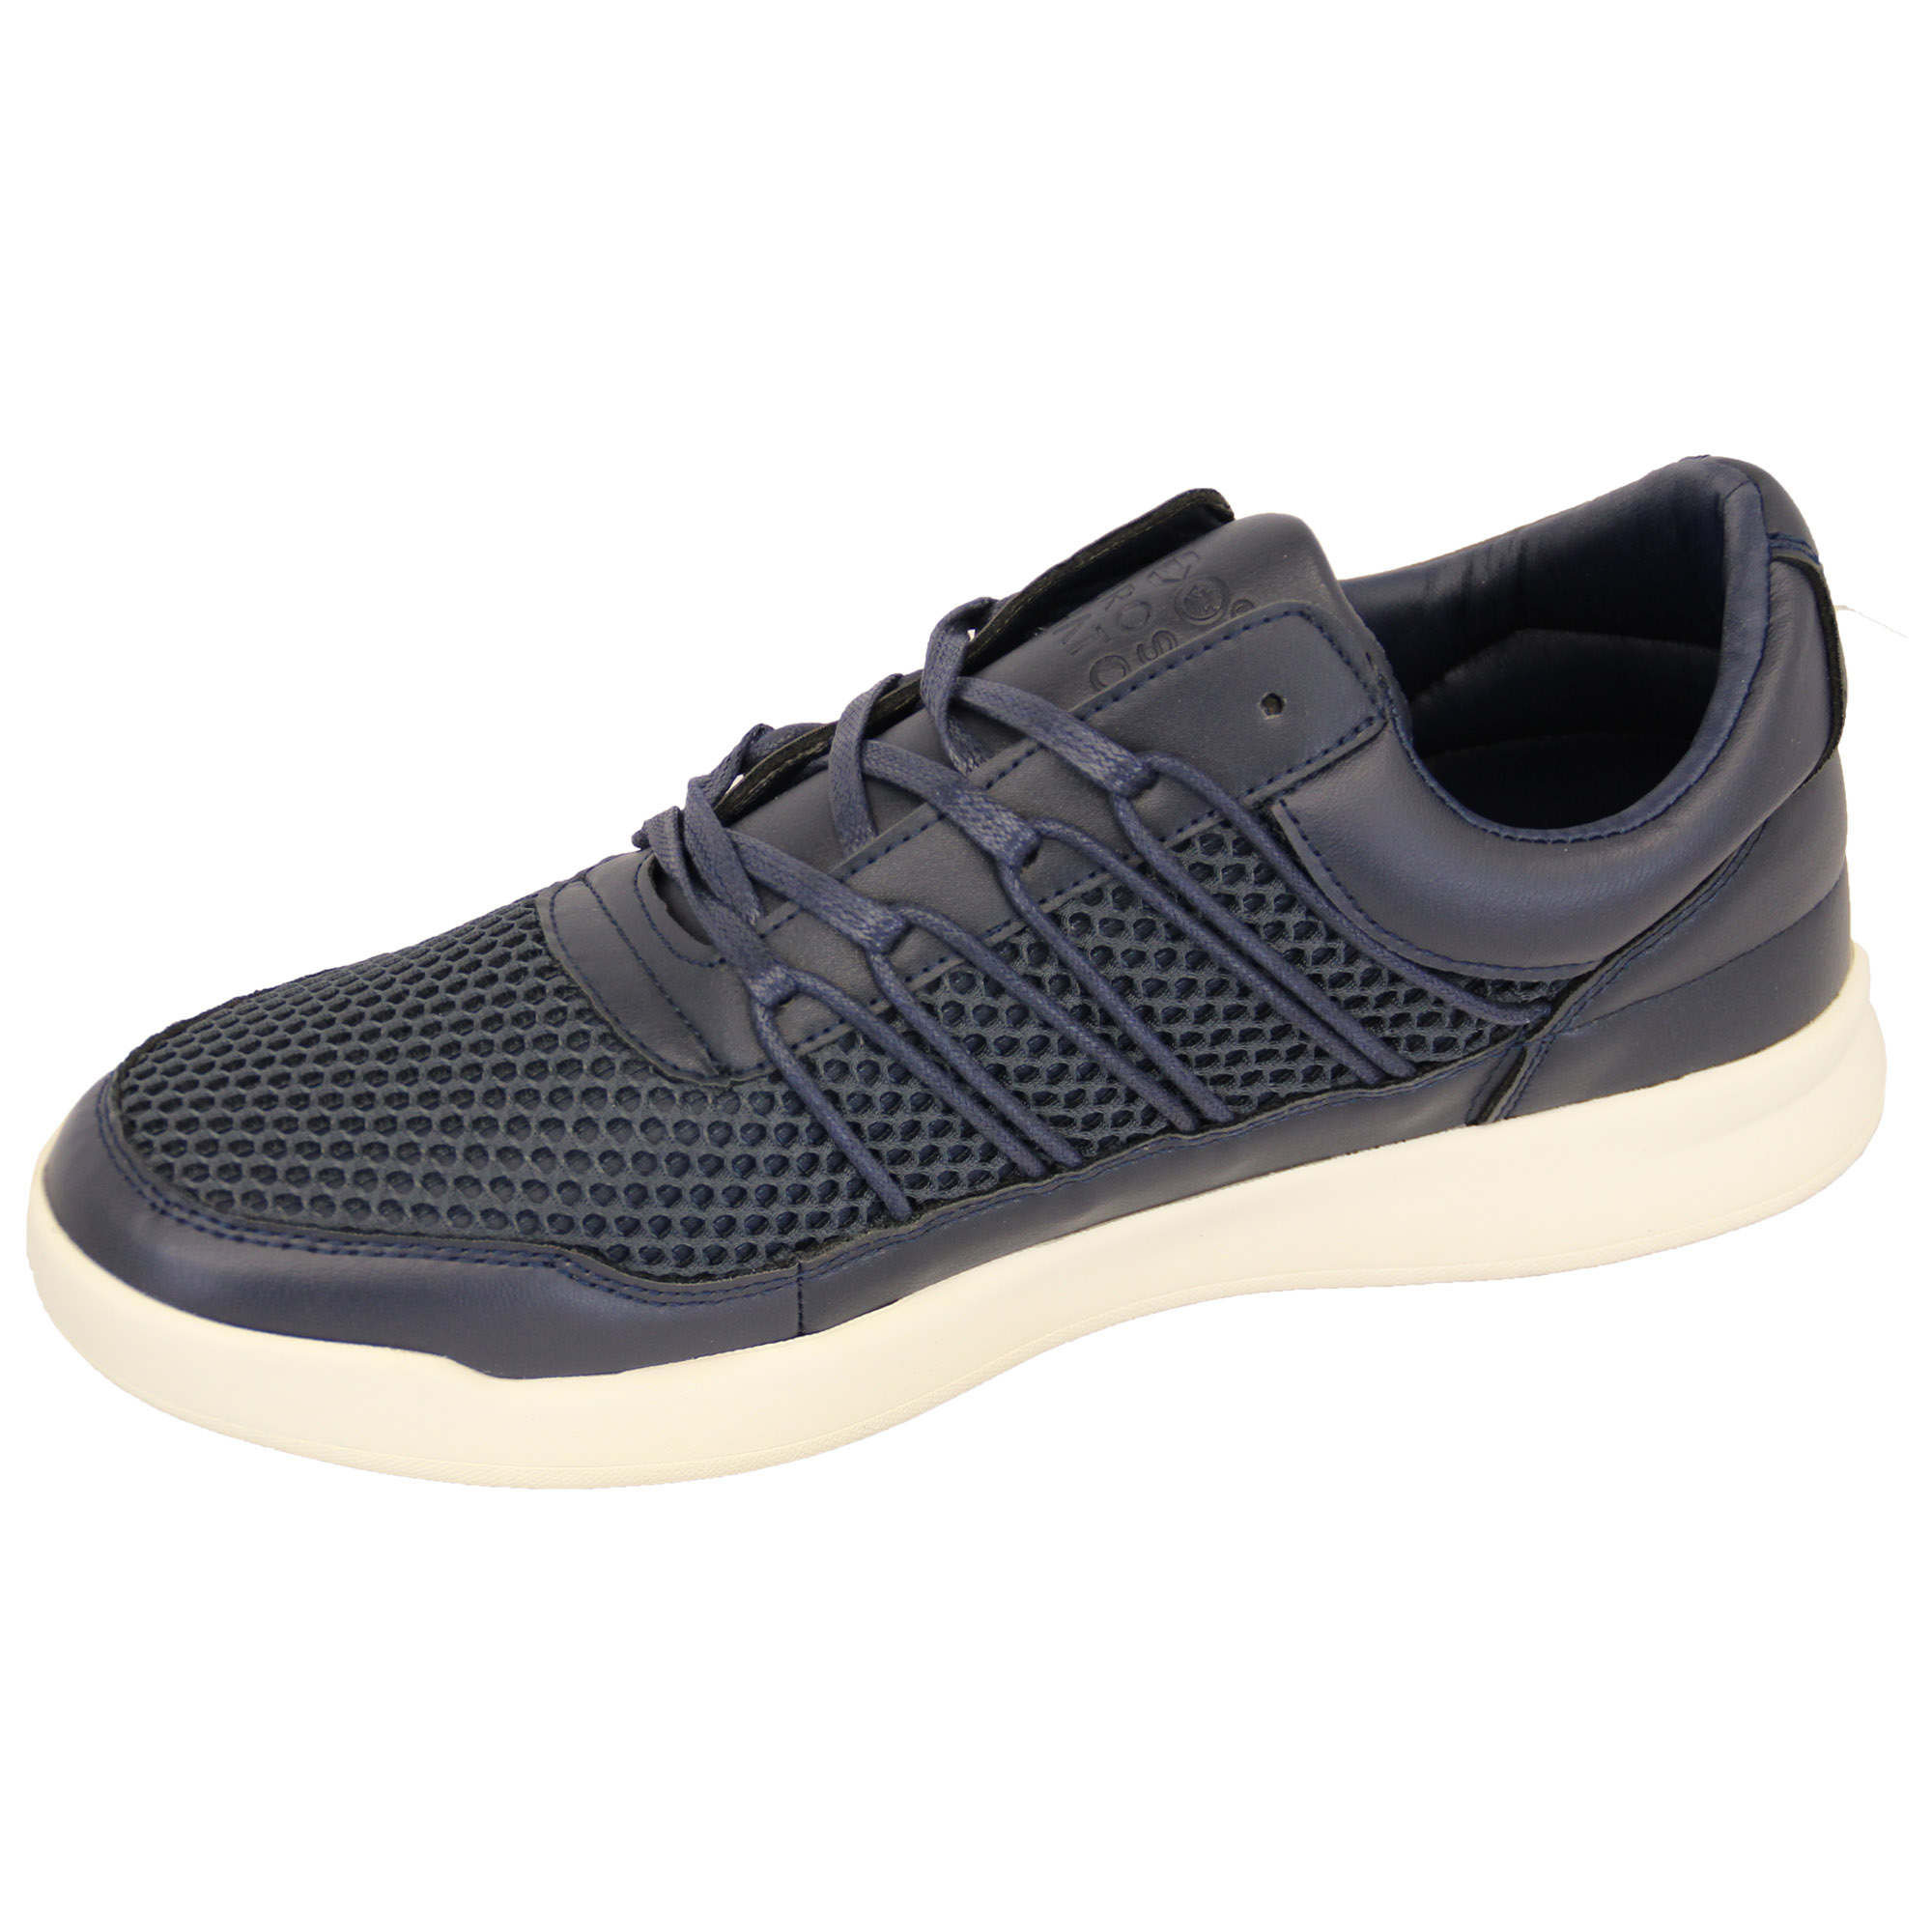 Mens-Trainers-Crosshatch-Jogging-Shoes-Lace-Up-Walking-Running-Sports-Gym-Mesh thumbnail 10